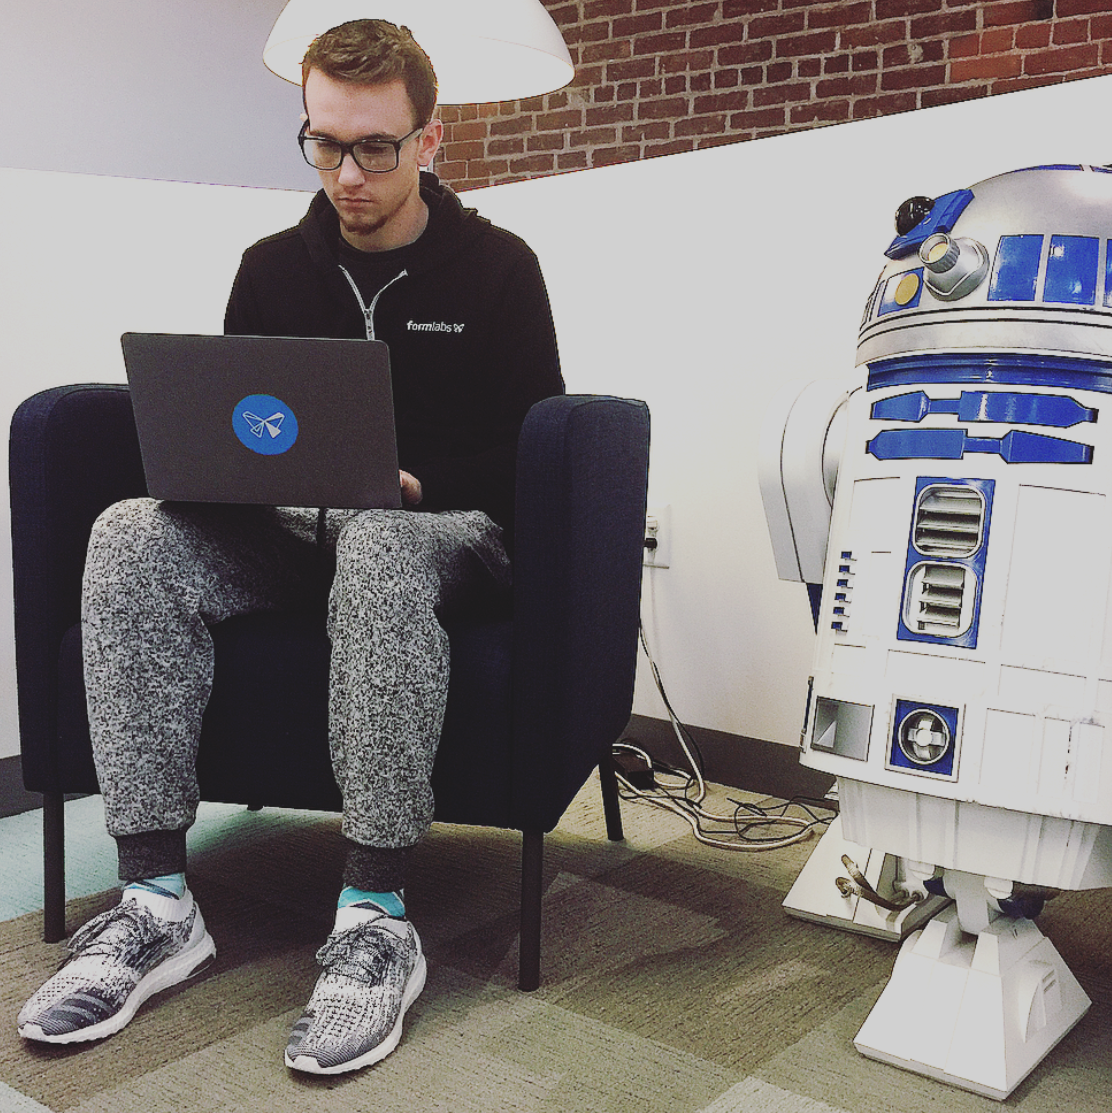 Jacob Johnston, QØ Alumni from Boston 2015, now working at the startup Formlabs